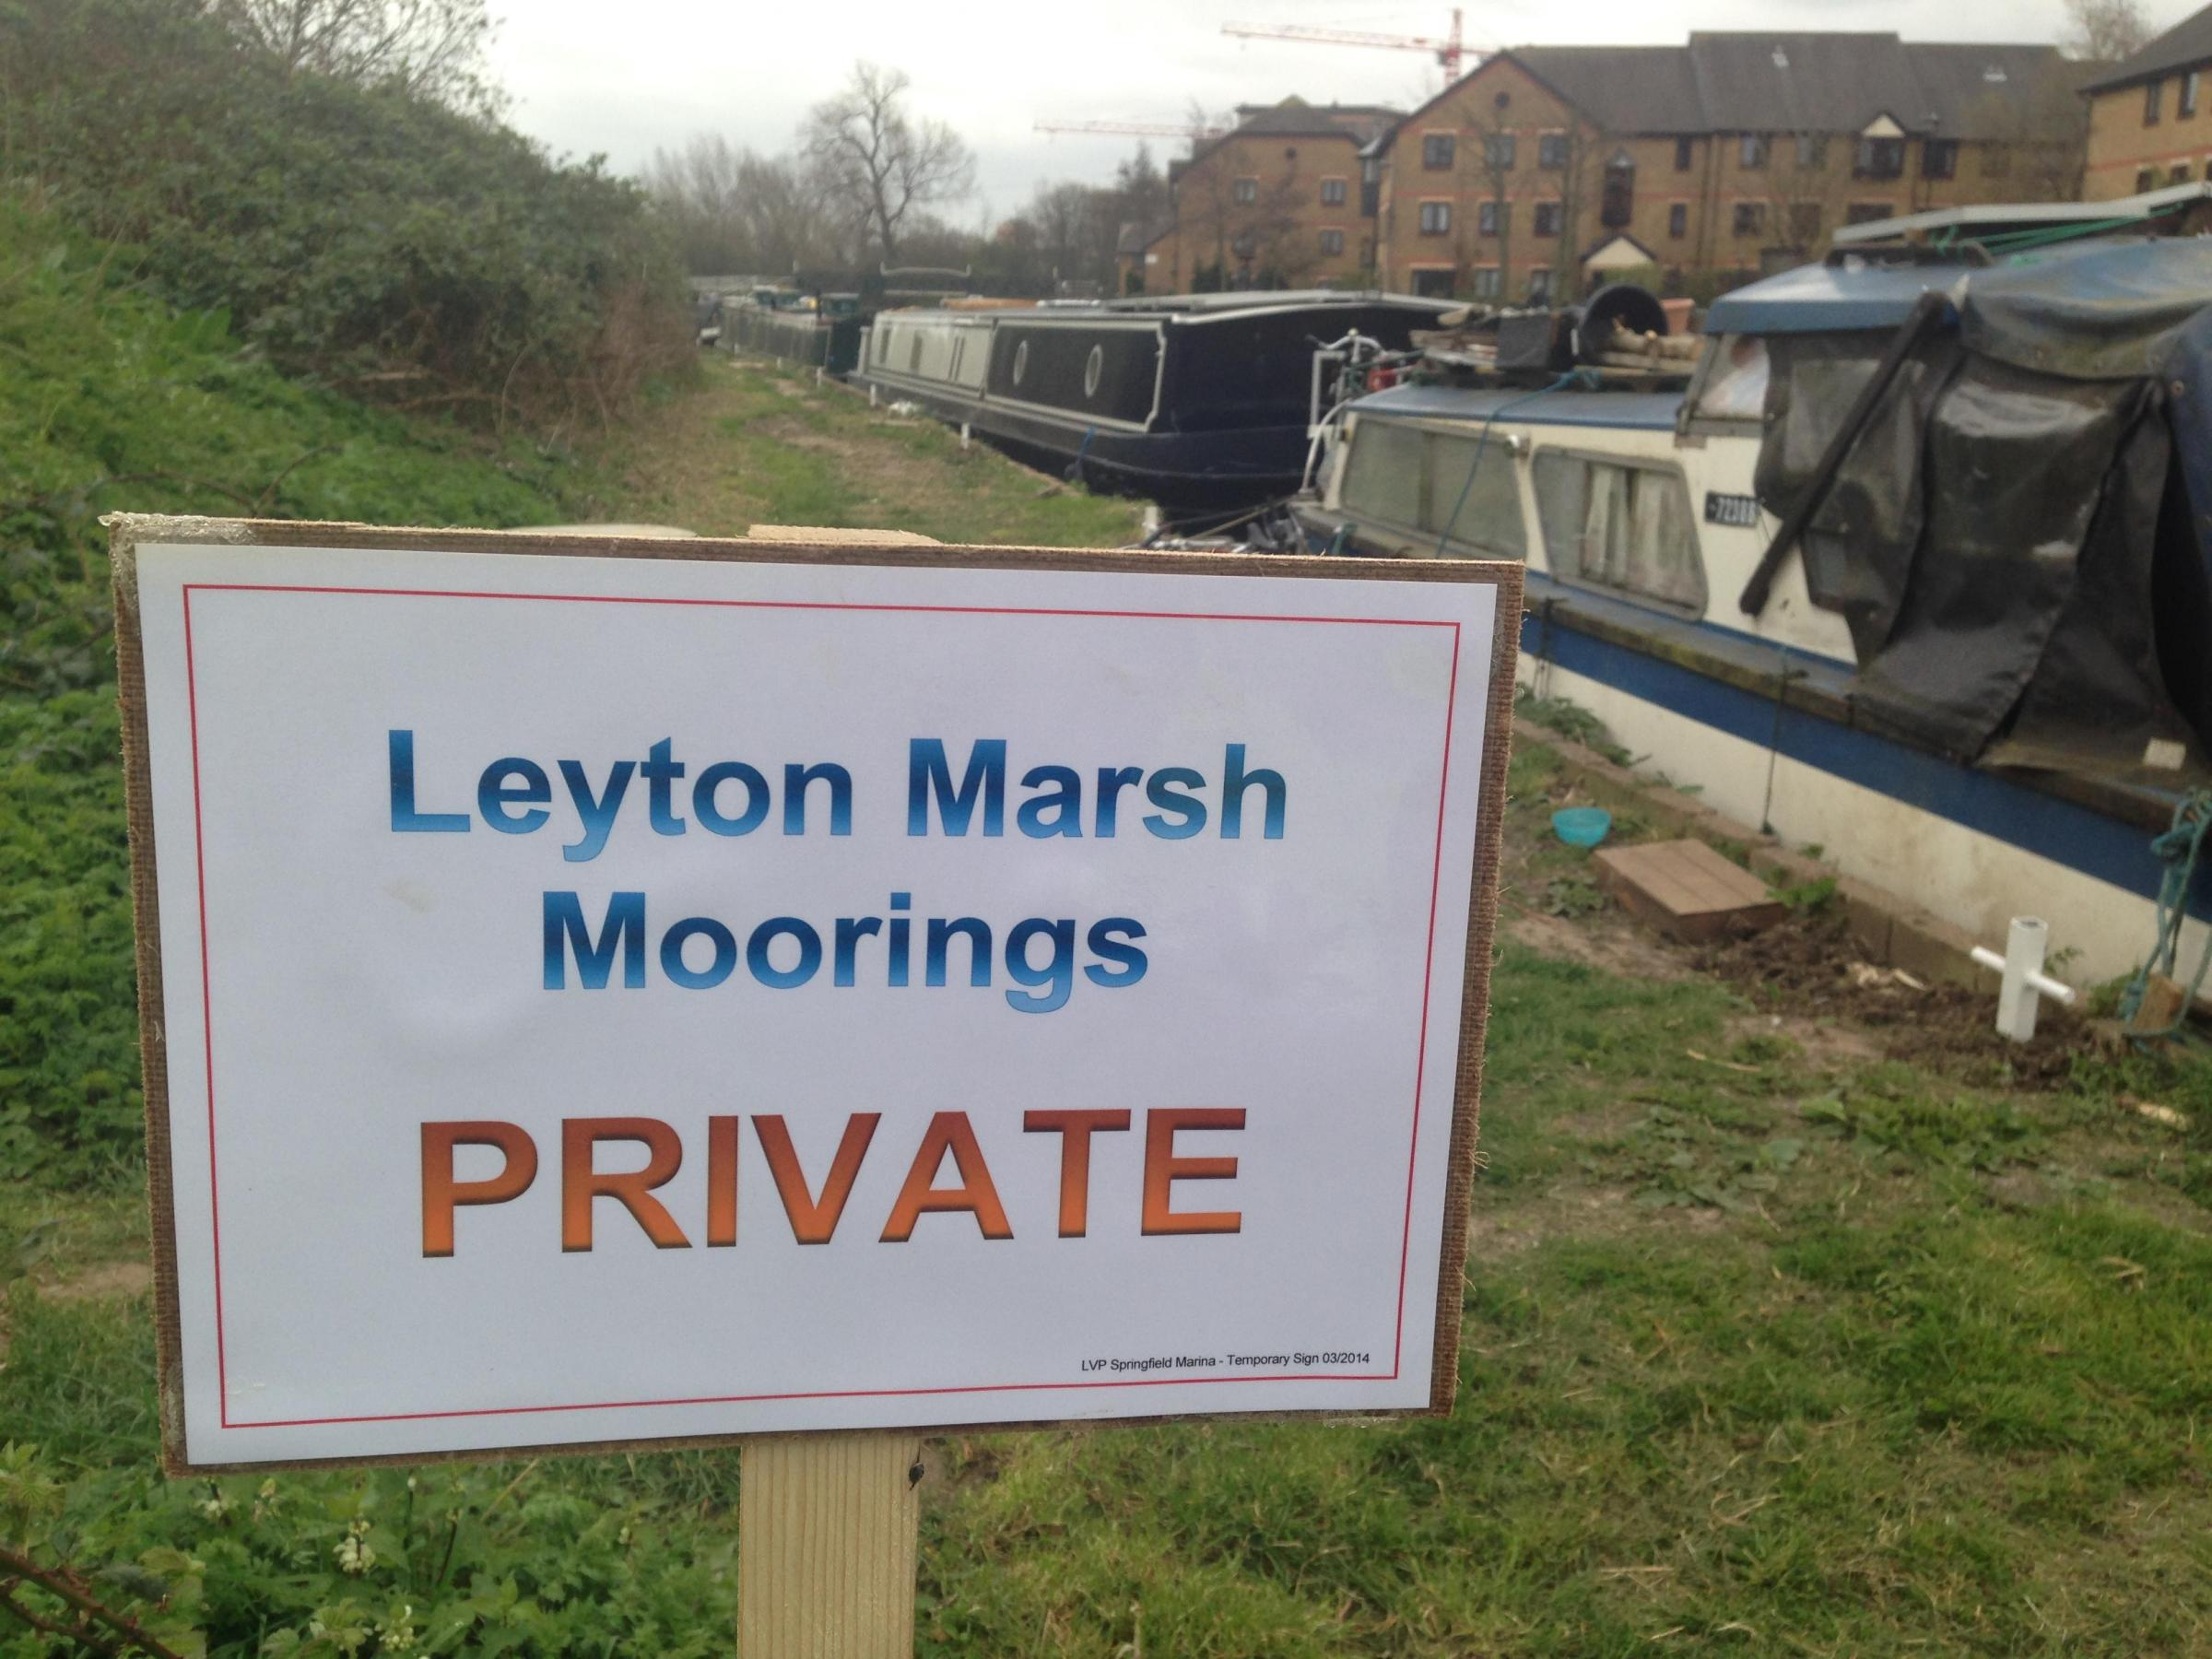 The signs erected last week by the Lee Valley Regional Park Authority.